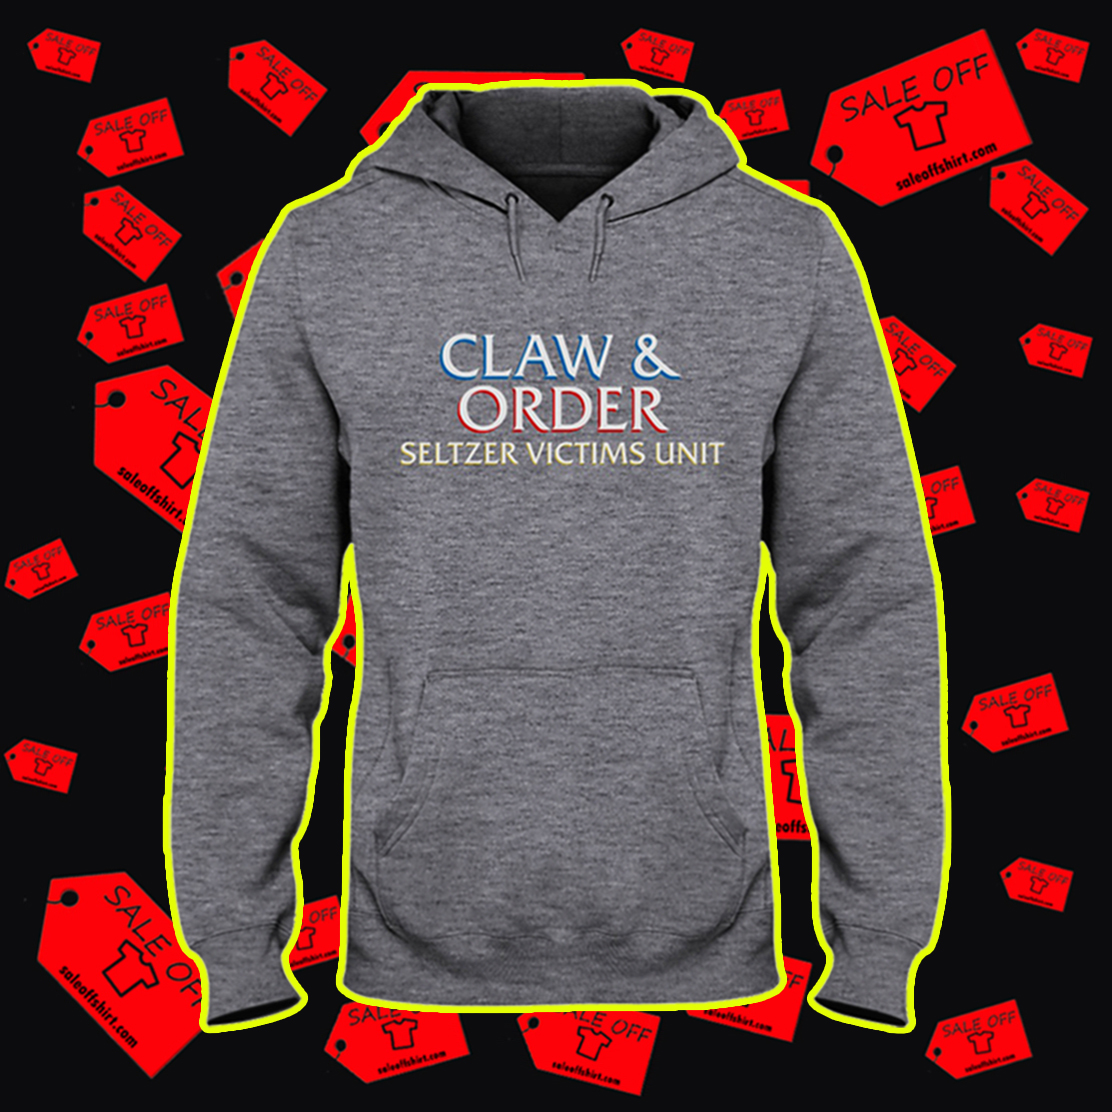 Claw and order seltzer victims unit hooded sweatshirt